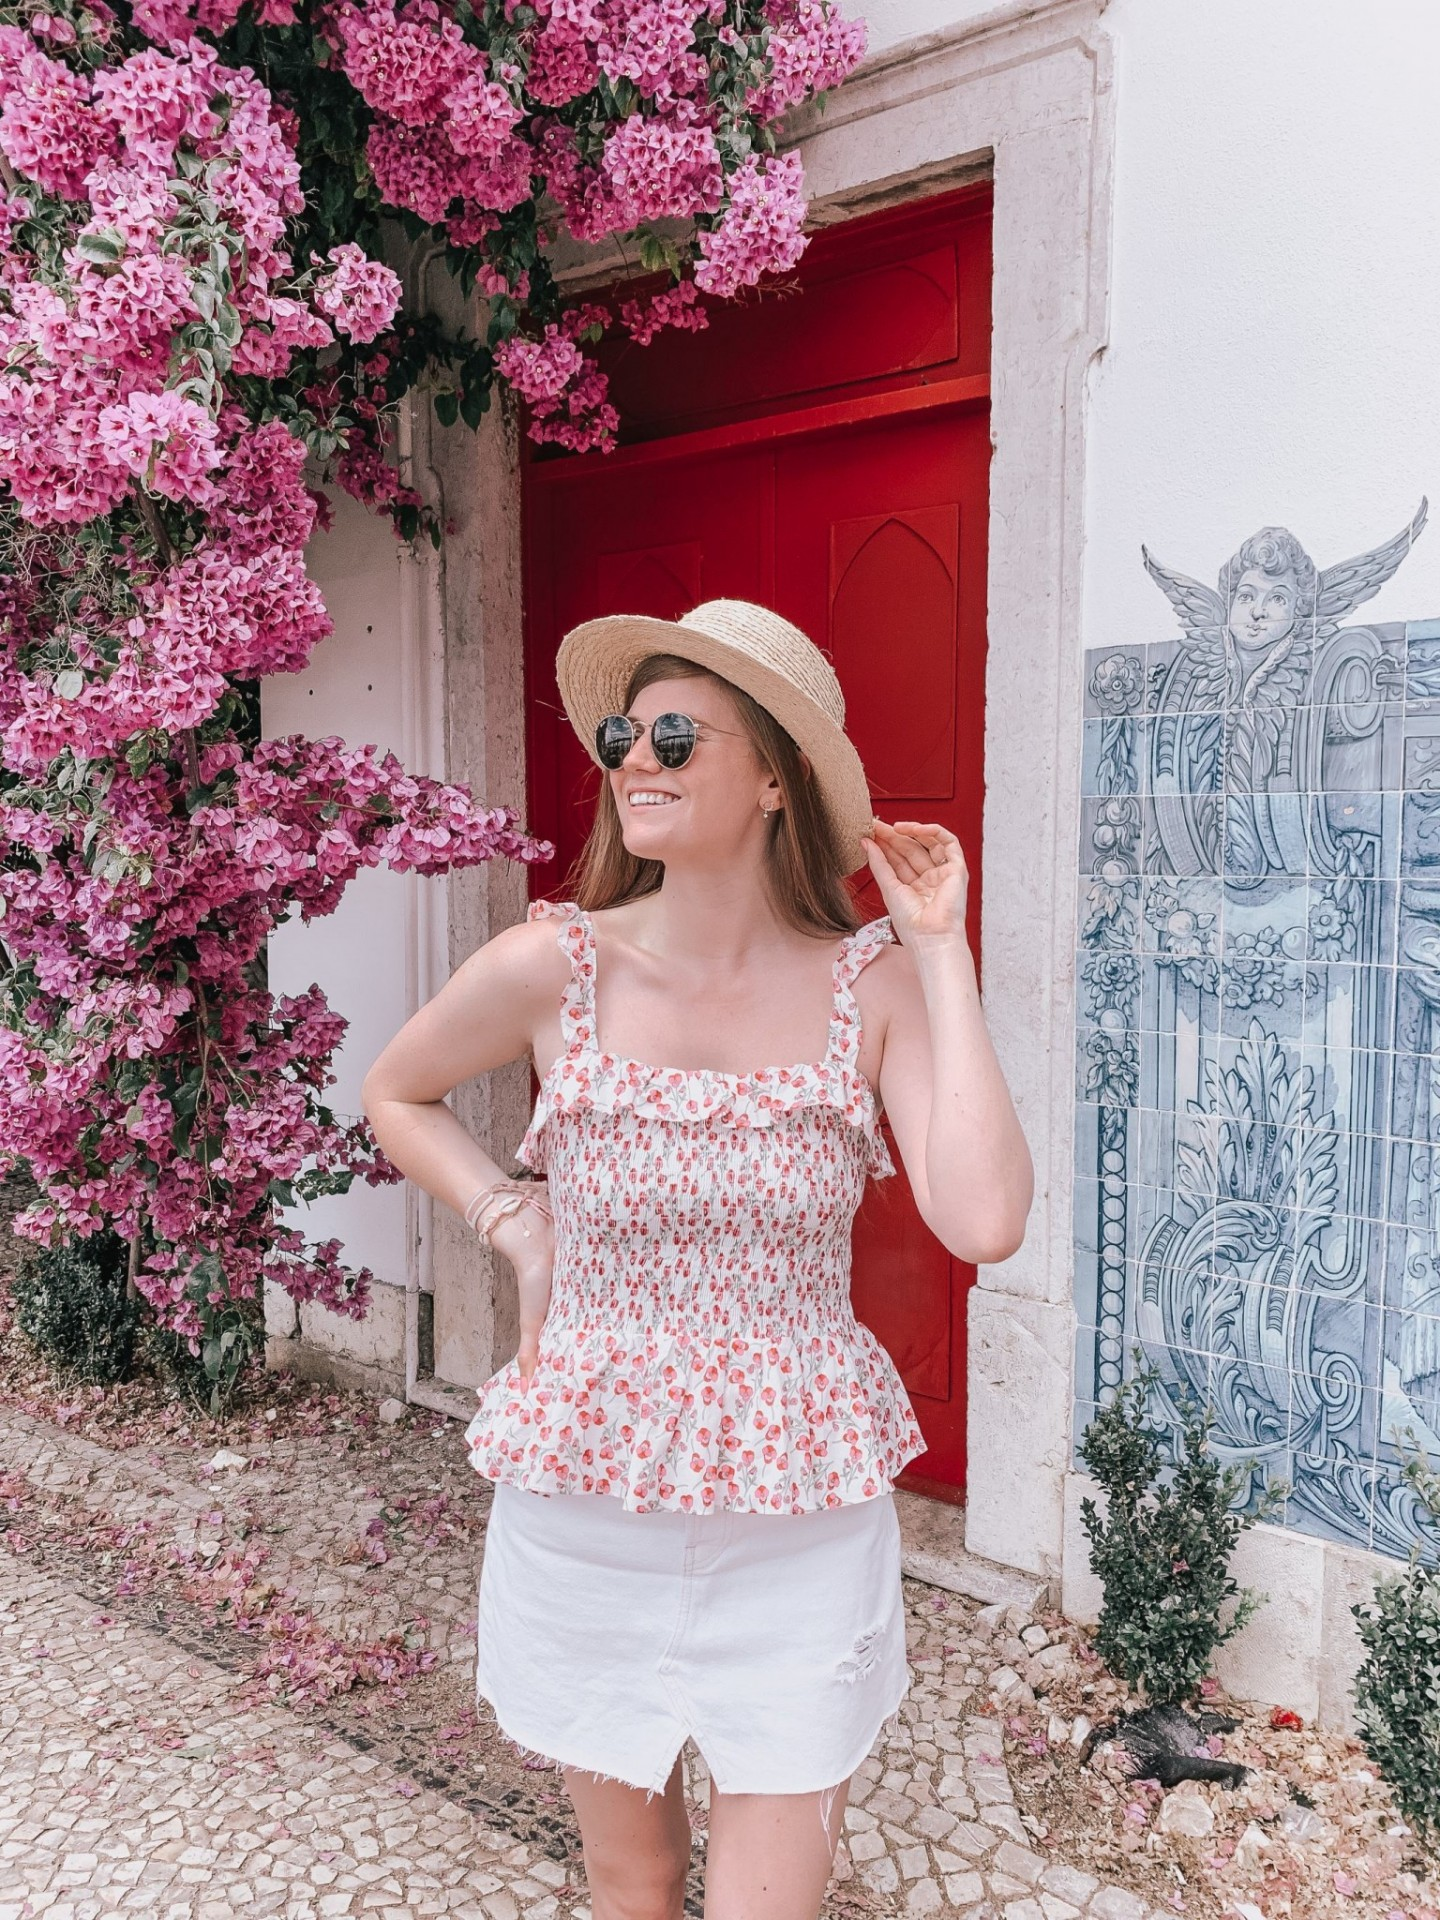 Lifestyle blogger Mollie Moore shares a Lisbon travel guide | Visiting Portugal: The Ultimate Lisbon Travel Guide & the Best Things to Do by popular London travel blogger, Mollie Moore: image of a woman standing next to a pink flowering trellis bush that's growing up the side of building with a red door.